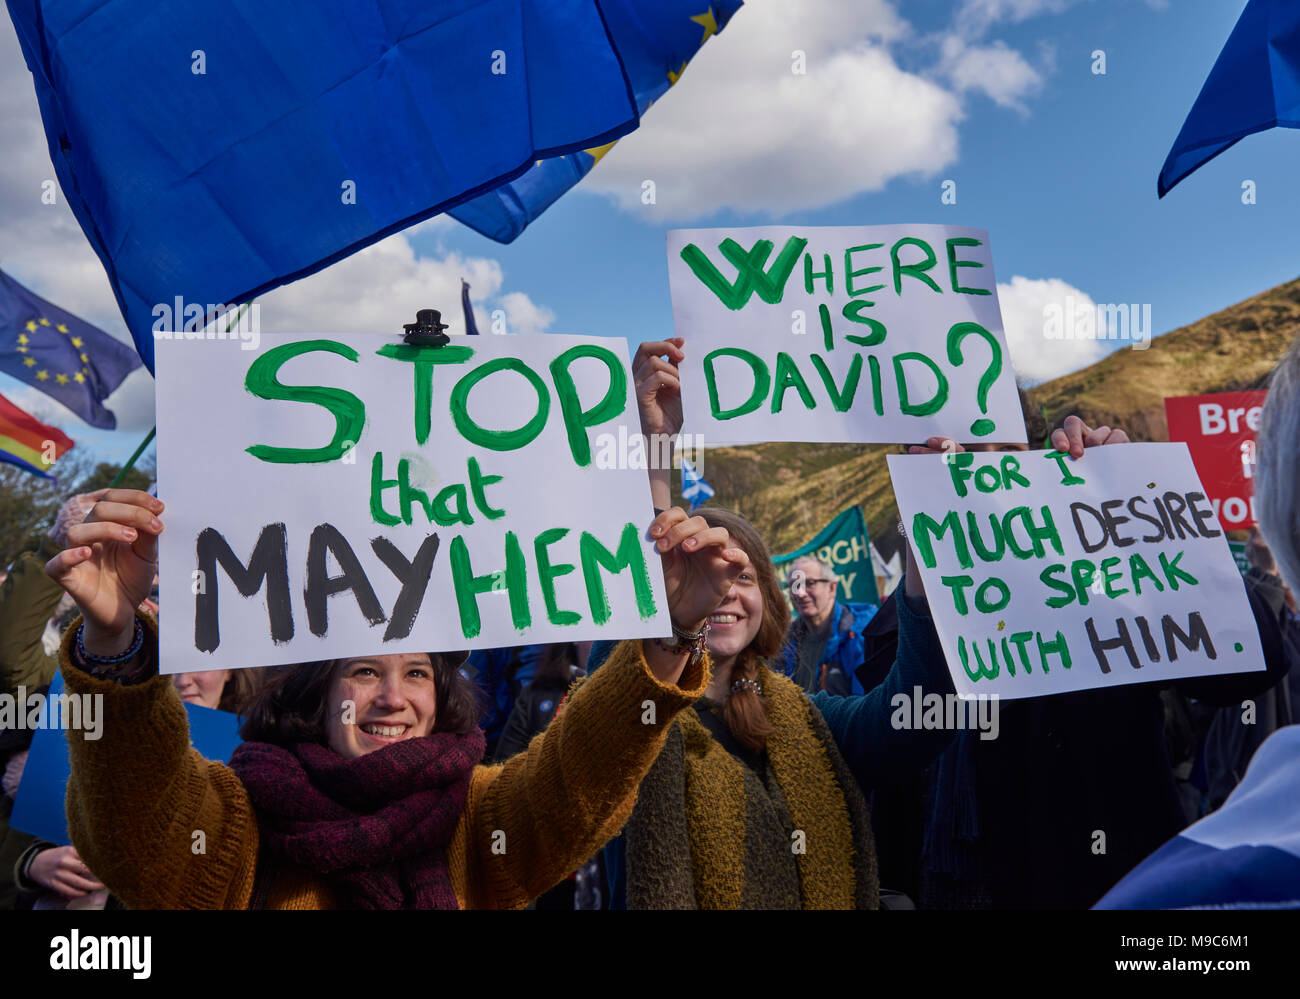 Edinburgh, Scotland, 24th March 2018, Demonstrators holding up Placards at the March for Europe Demonstration in Edinburgh, UK. Credit JJ Walters/Alamy Live News - Stock Image